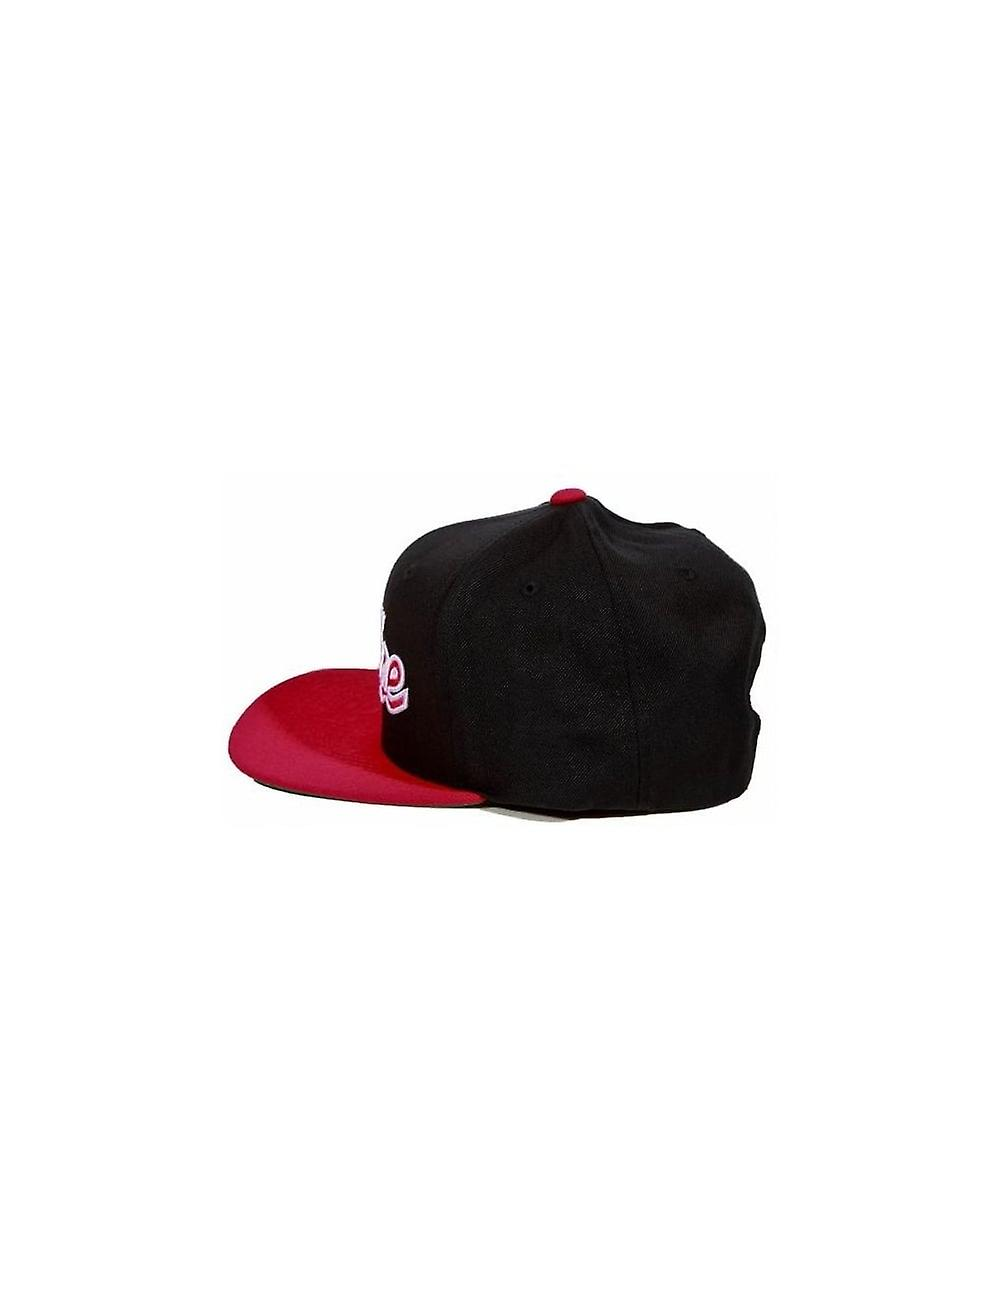 Obey Clothing Obey Posse Snapback -black/red